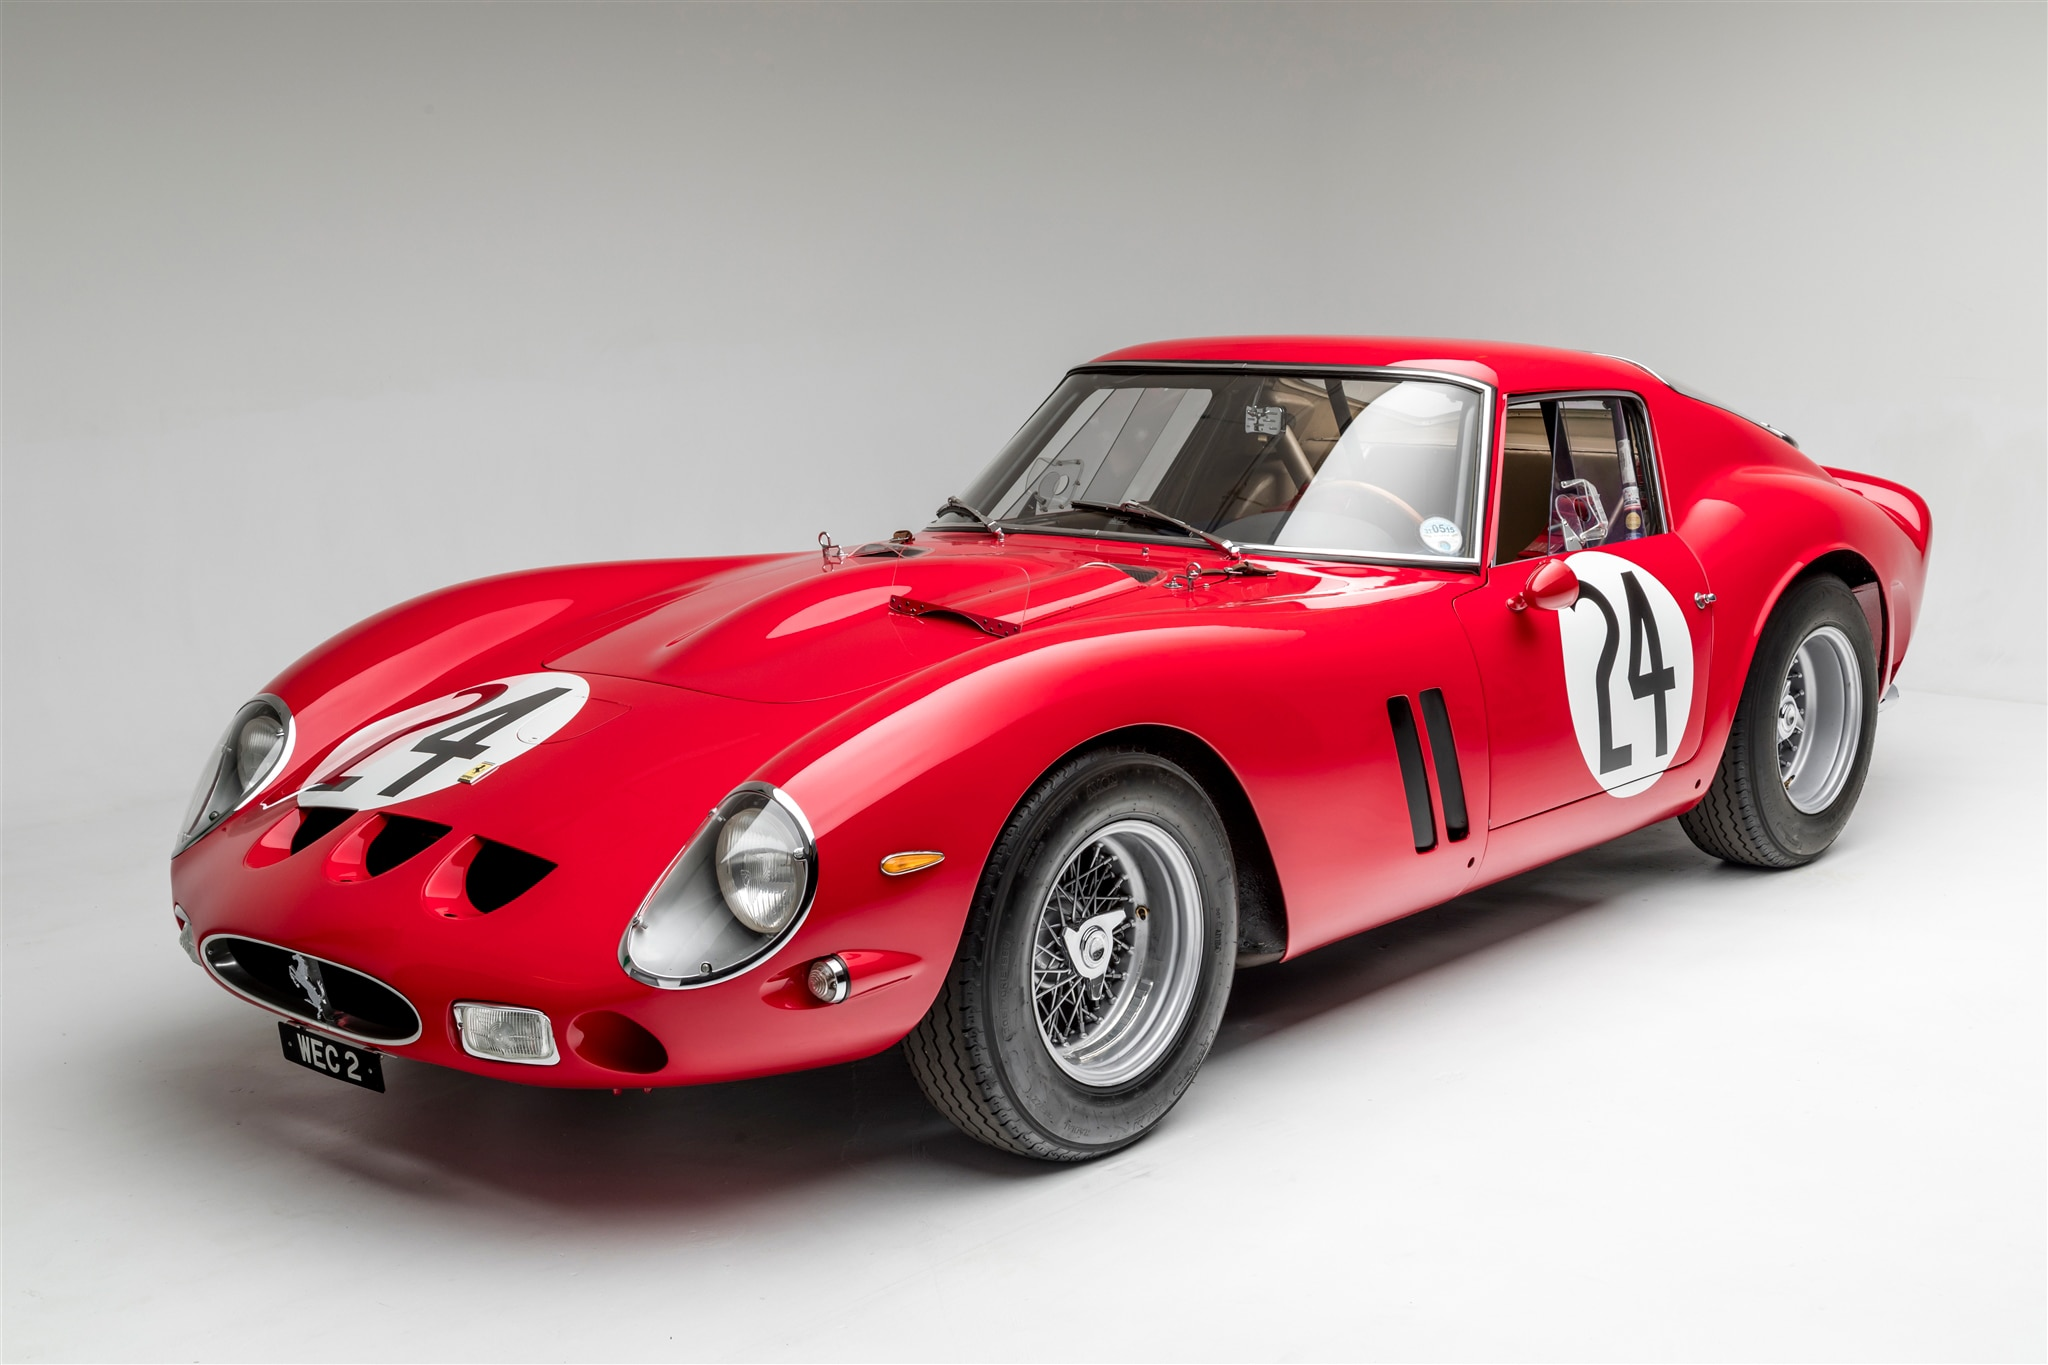 1963 Ferrari 250 GTO Front Three Quarter